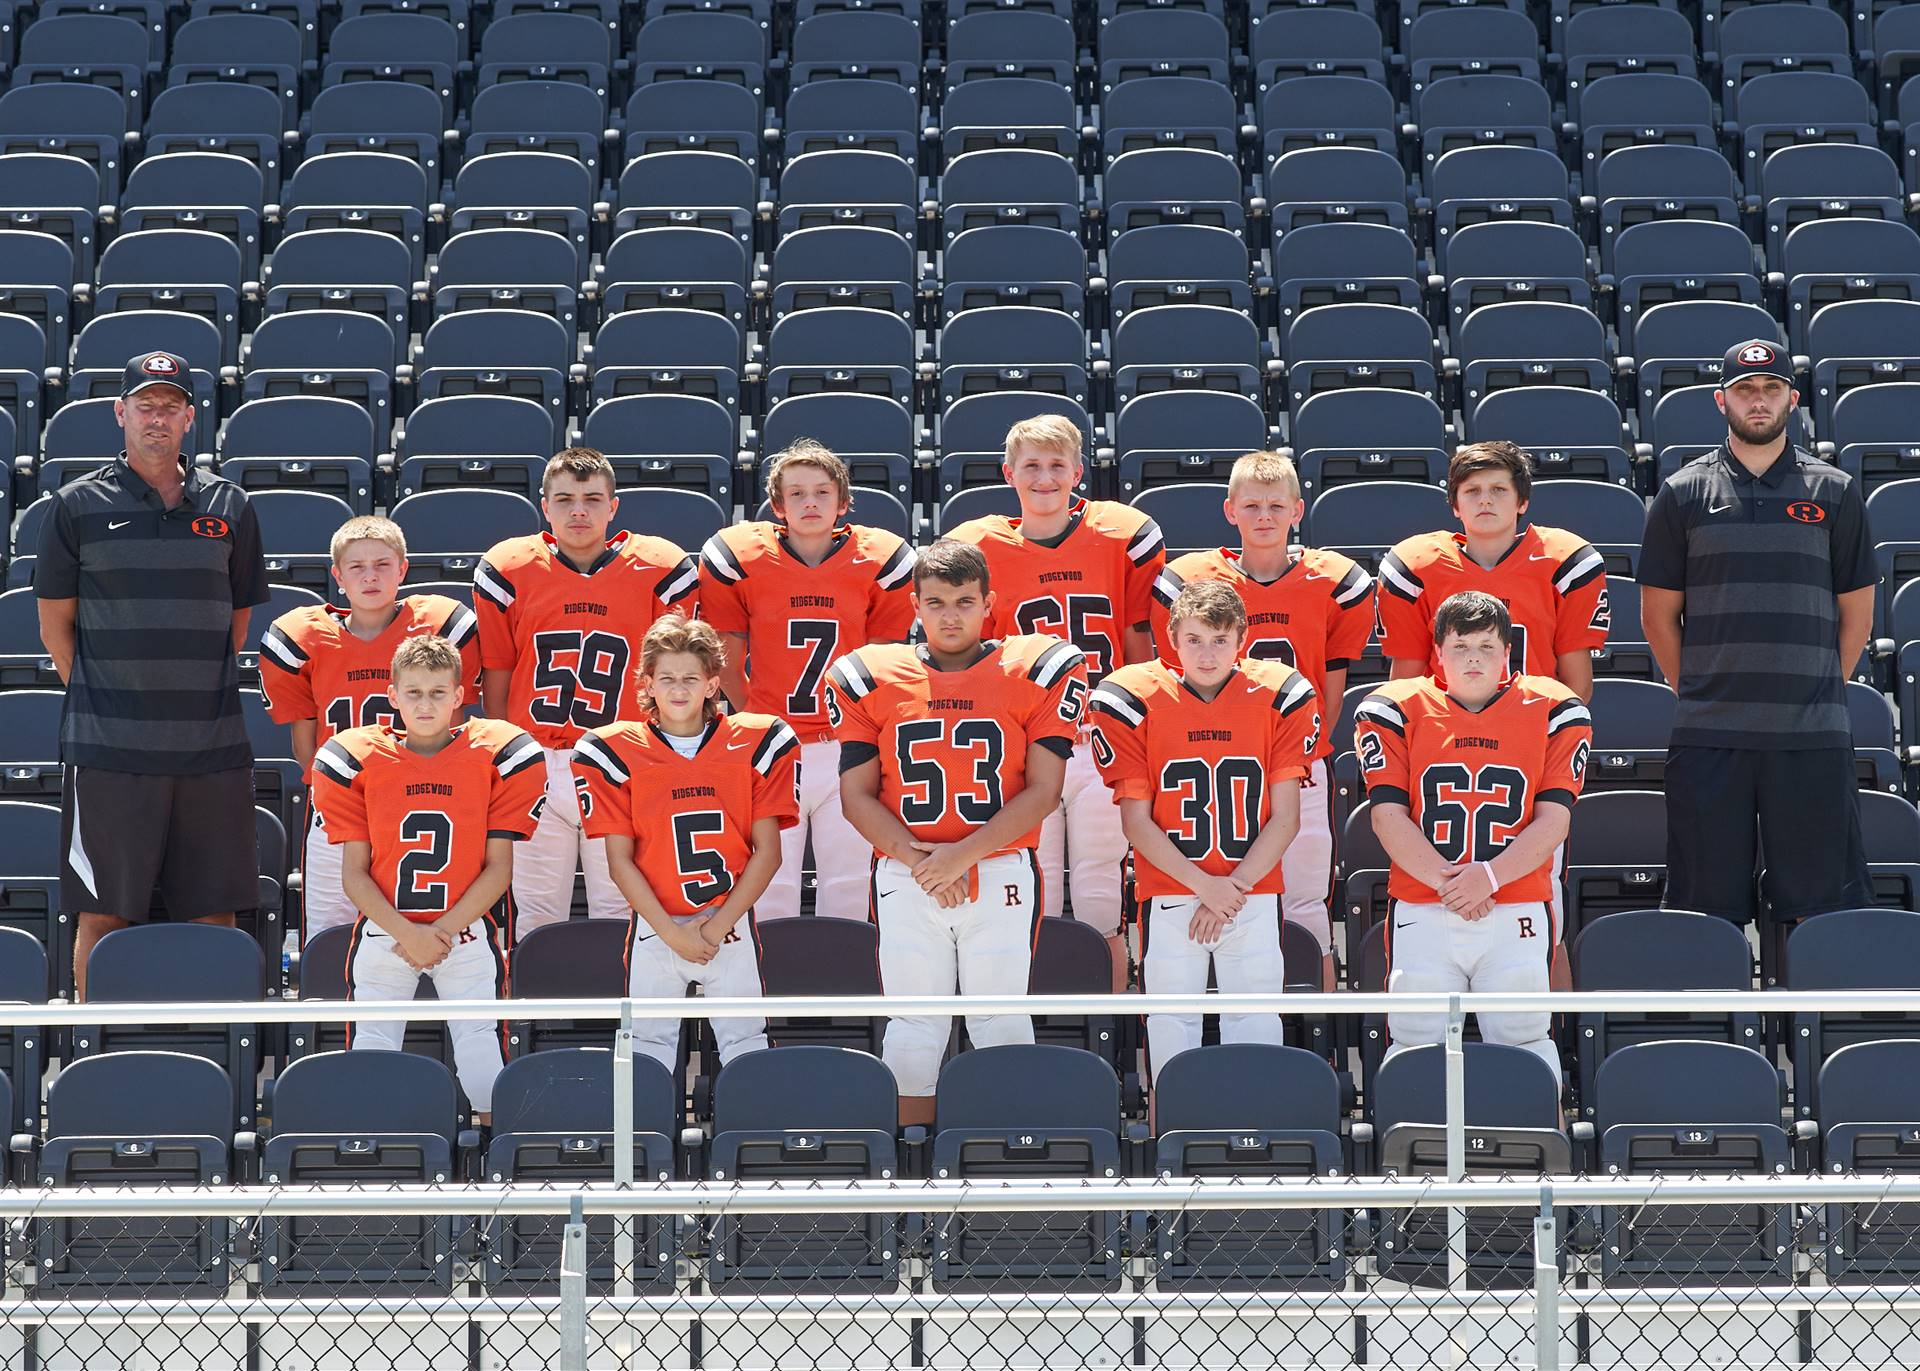 JH FB - 7th Team